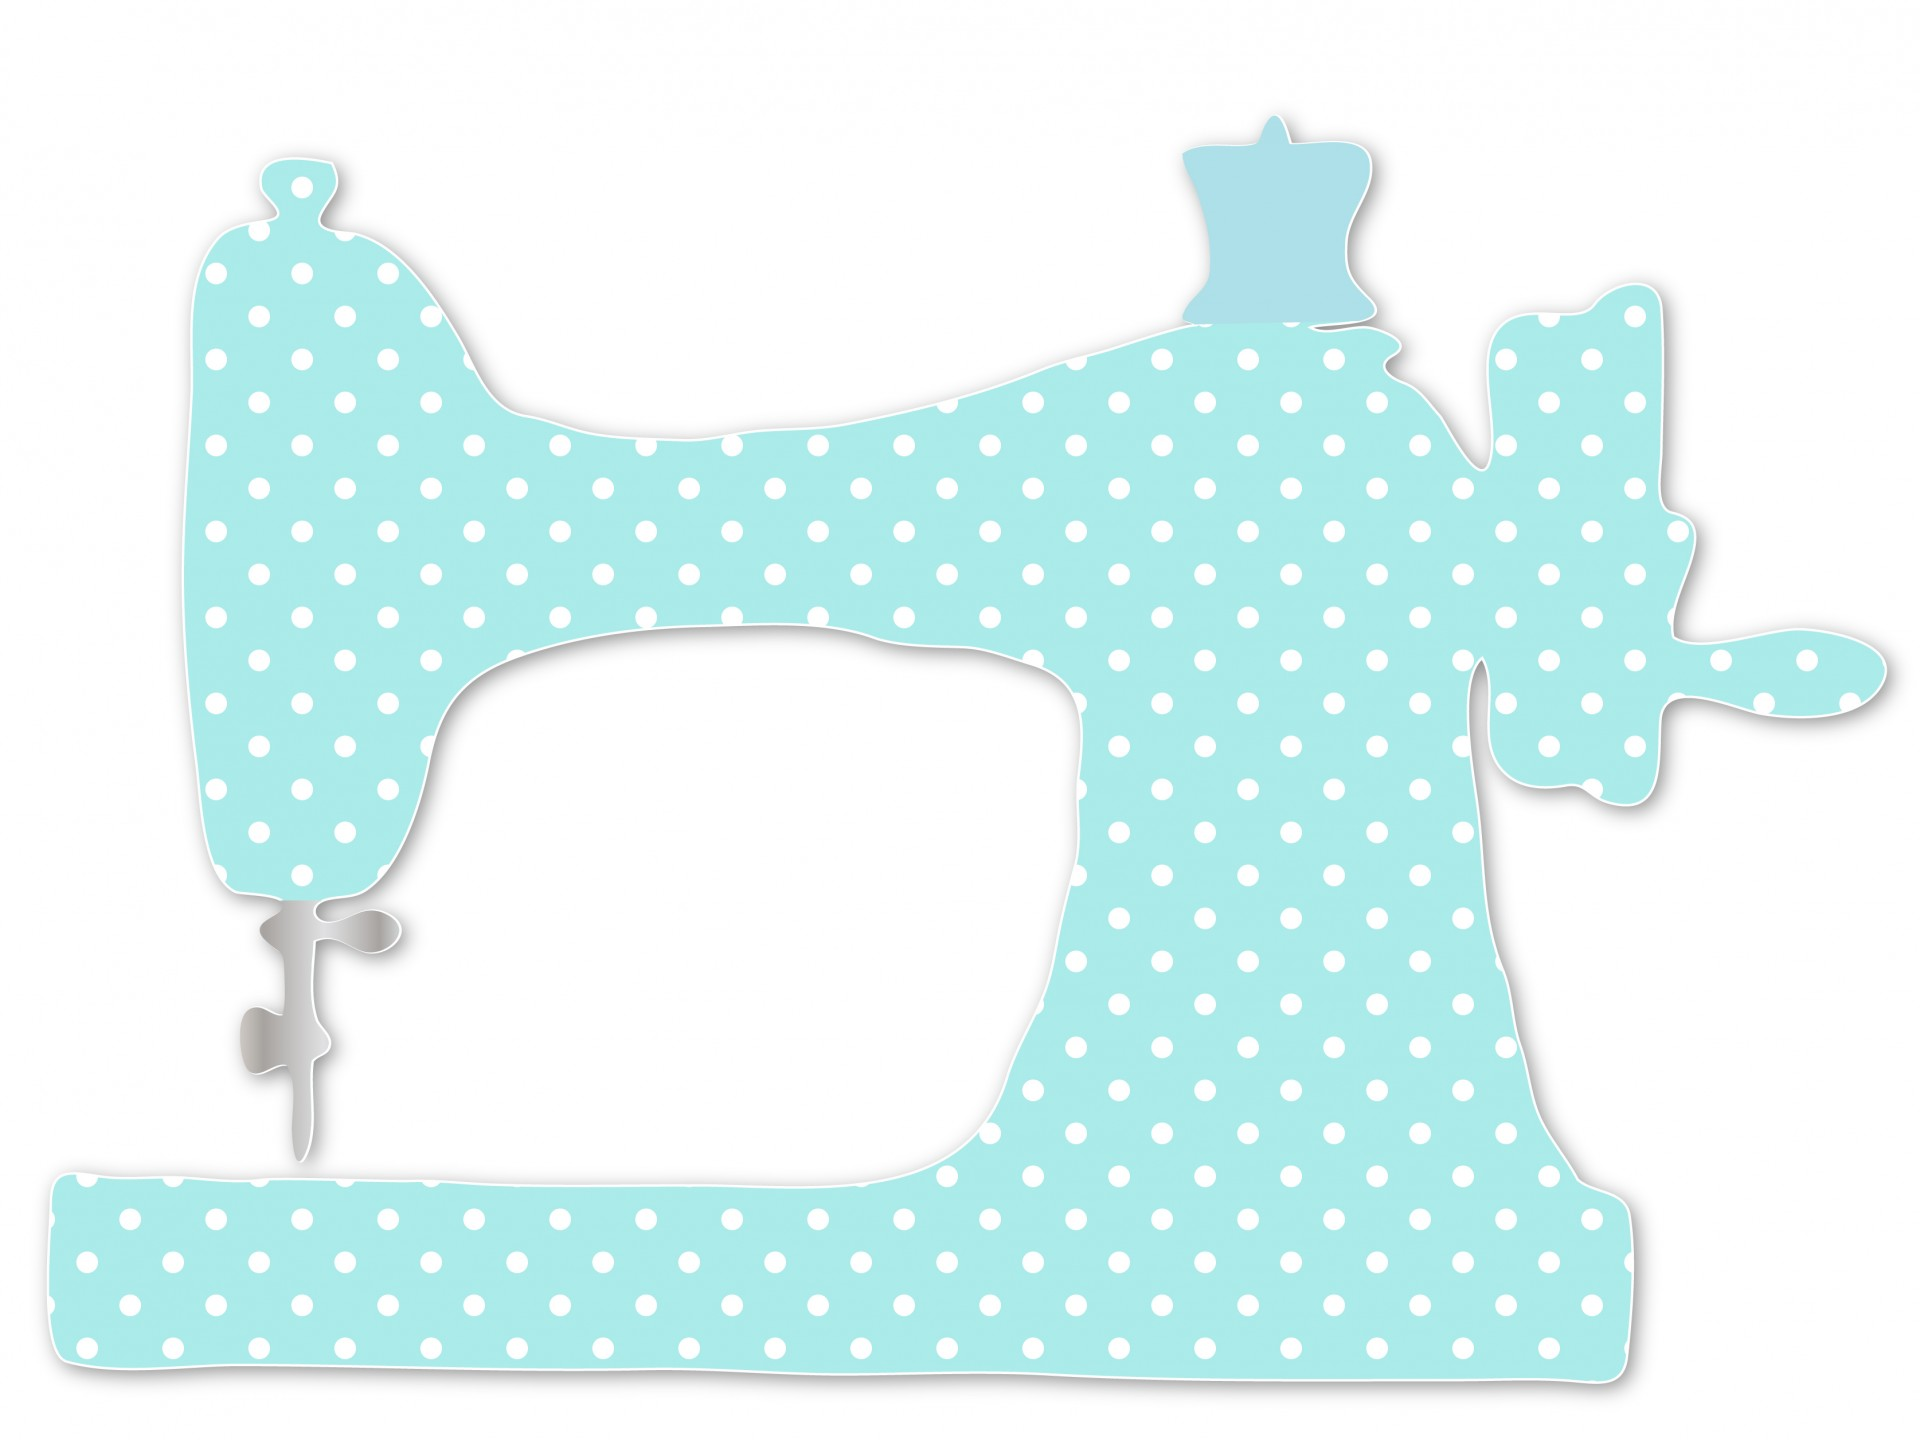 ... Vintage Sewing Machine Clipart ...